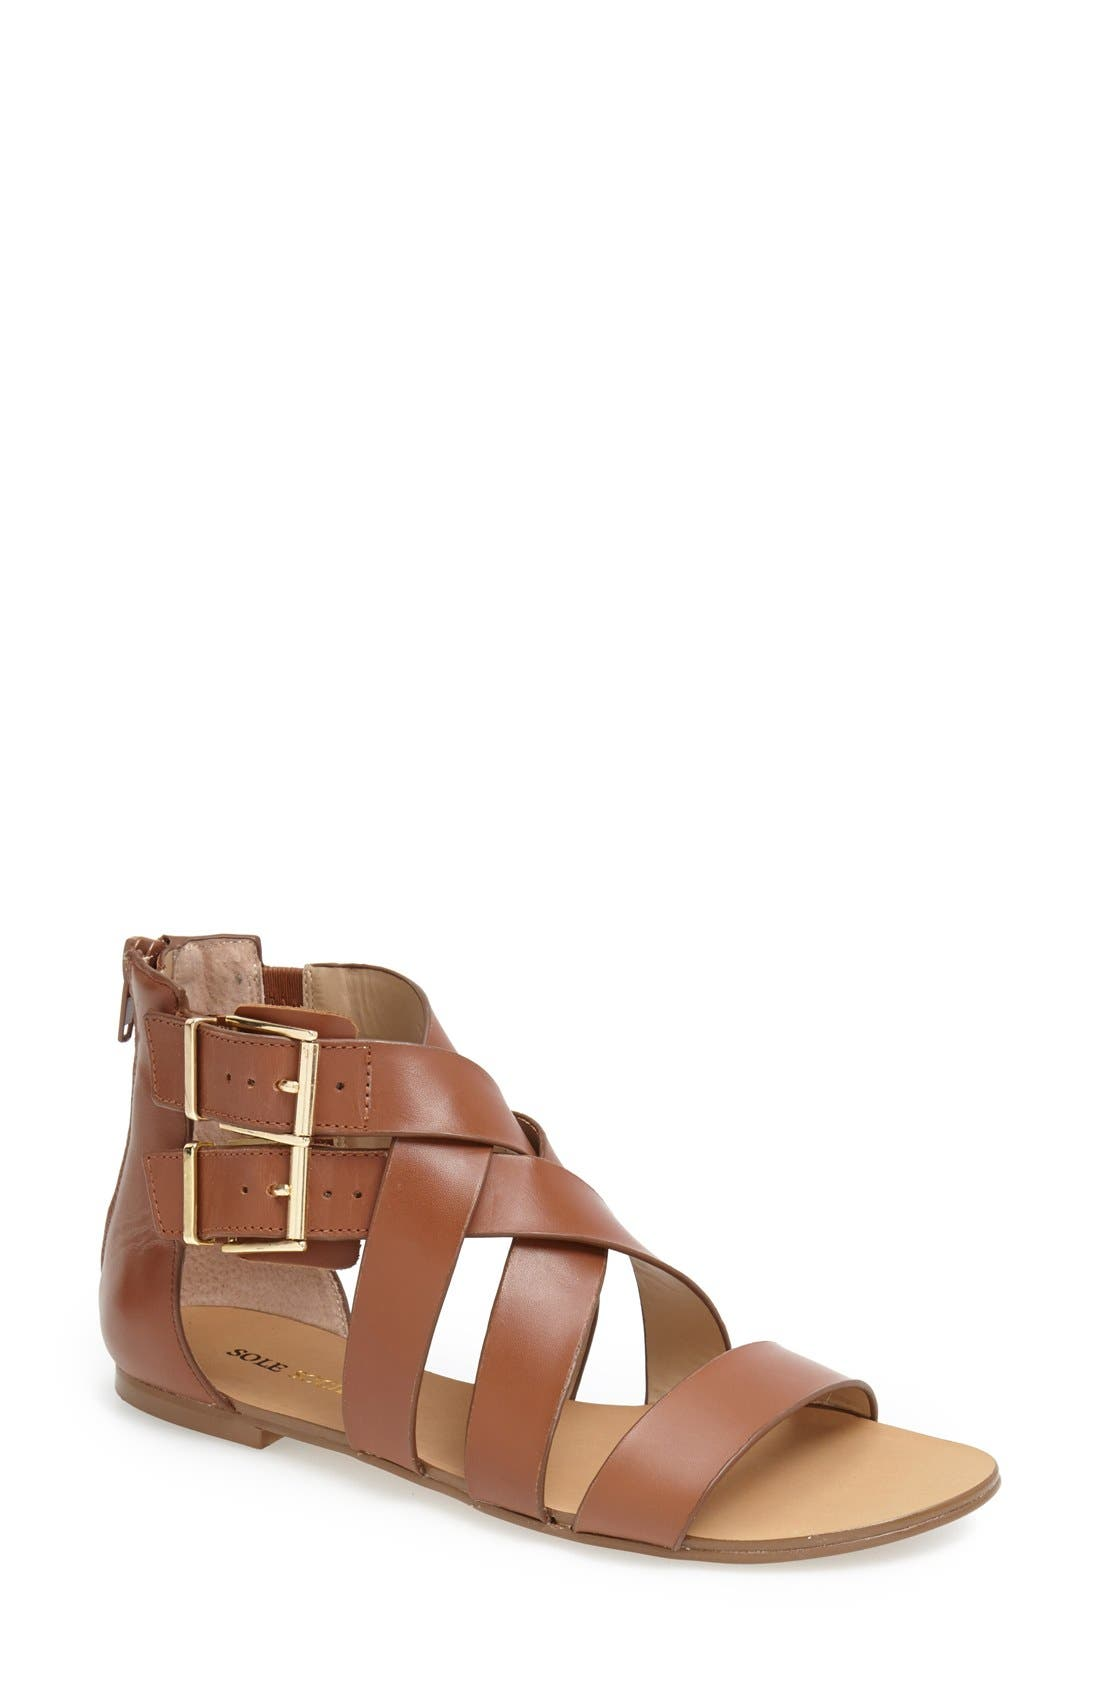 Alternate Image 1 Selected - SOLE SOCIETY NANCIE SANDAL